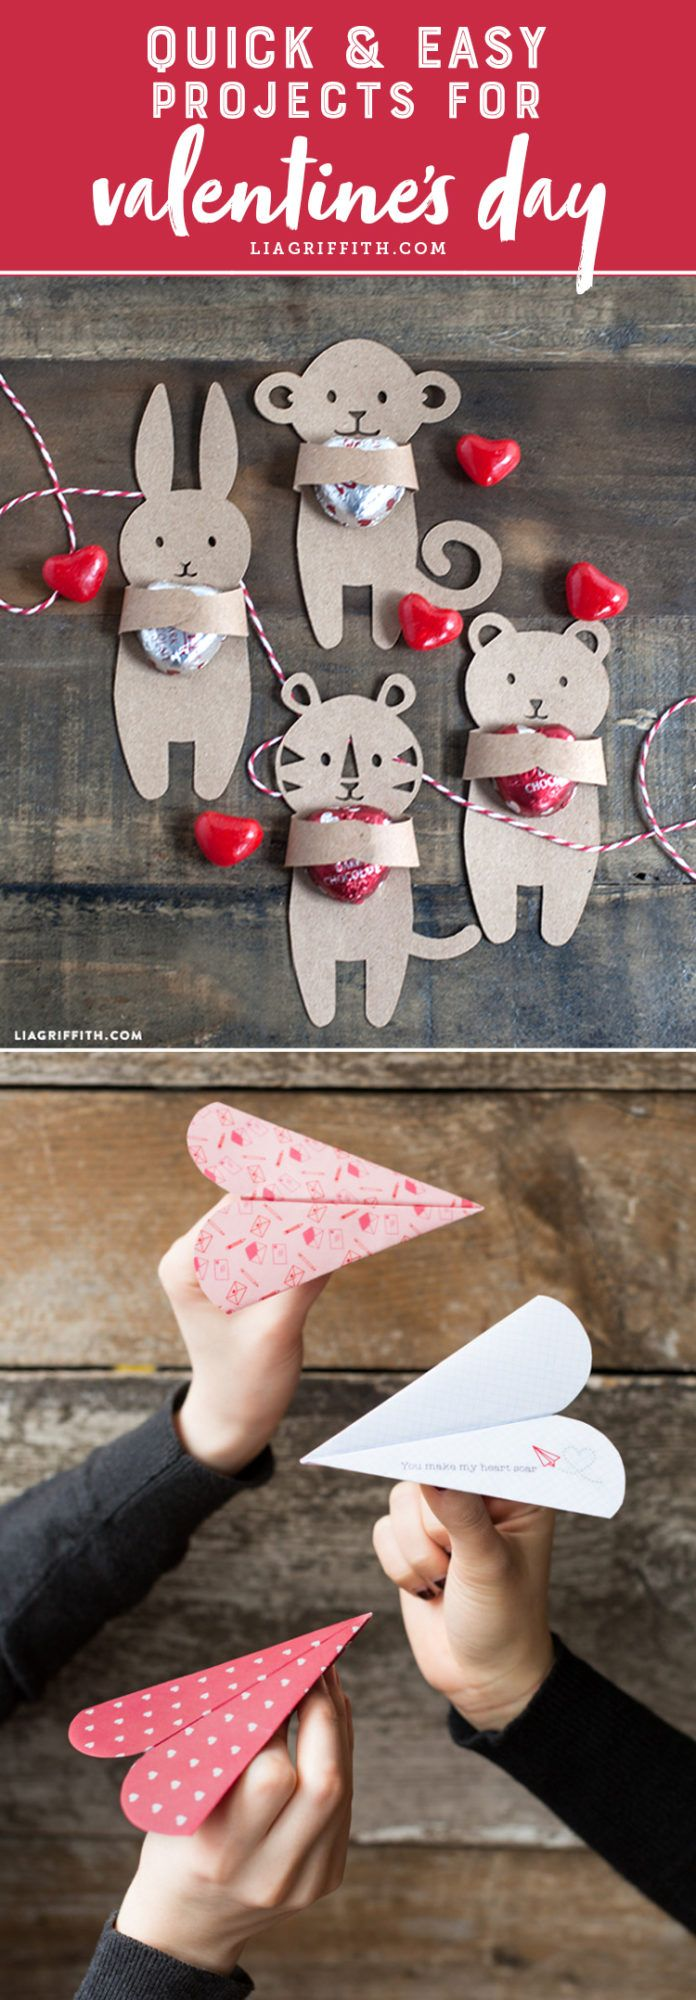 Lots to Love ❤️We've rounded up 14 of our favorite projects for Feb 14th. Check them out here for some last minute love https://liagriffith.com/last-minute-valentines-day-projects/ * * * #lastminutevalentines #valentinesday #february14 #diylove #easycrafts #diyidea #diyinspiration #diyideas #diycraft #diycrafts #valentinescrafts #valentinescountdown #paperlove #papercraft #papercut #paperprojects #kidscrafts #printable #printables #diygift #diykids #valentinesparty #valentinesday2018 #bemine…